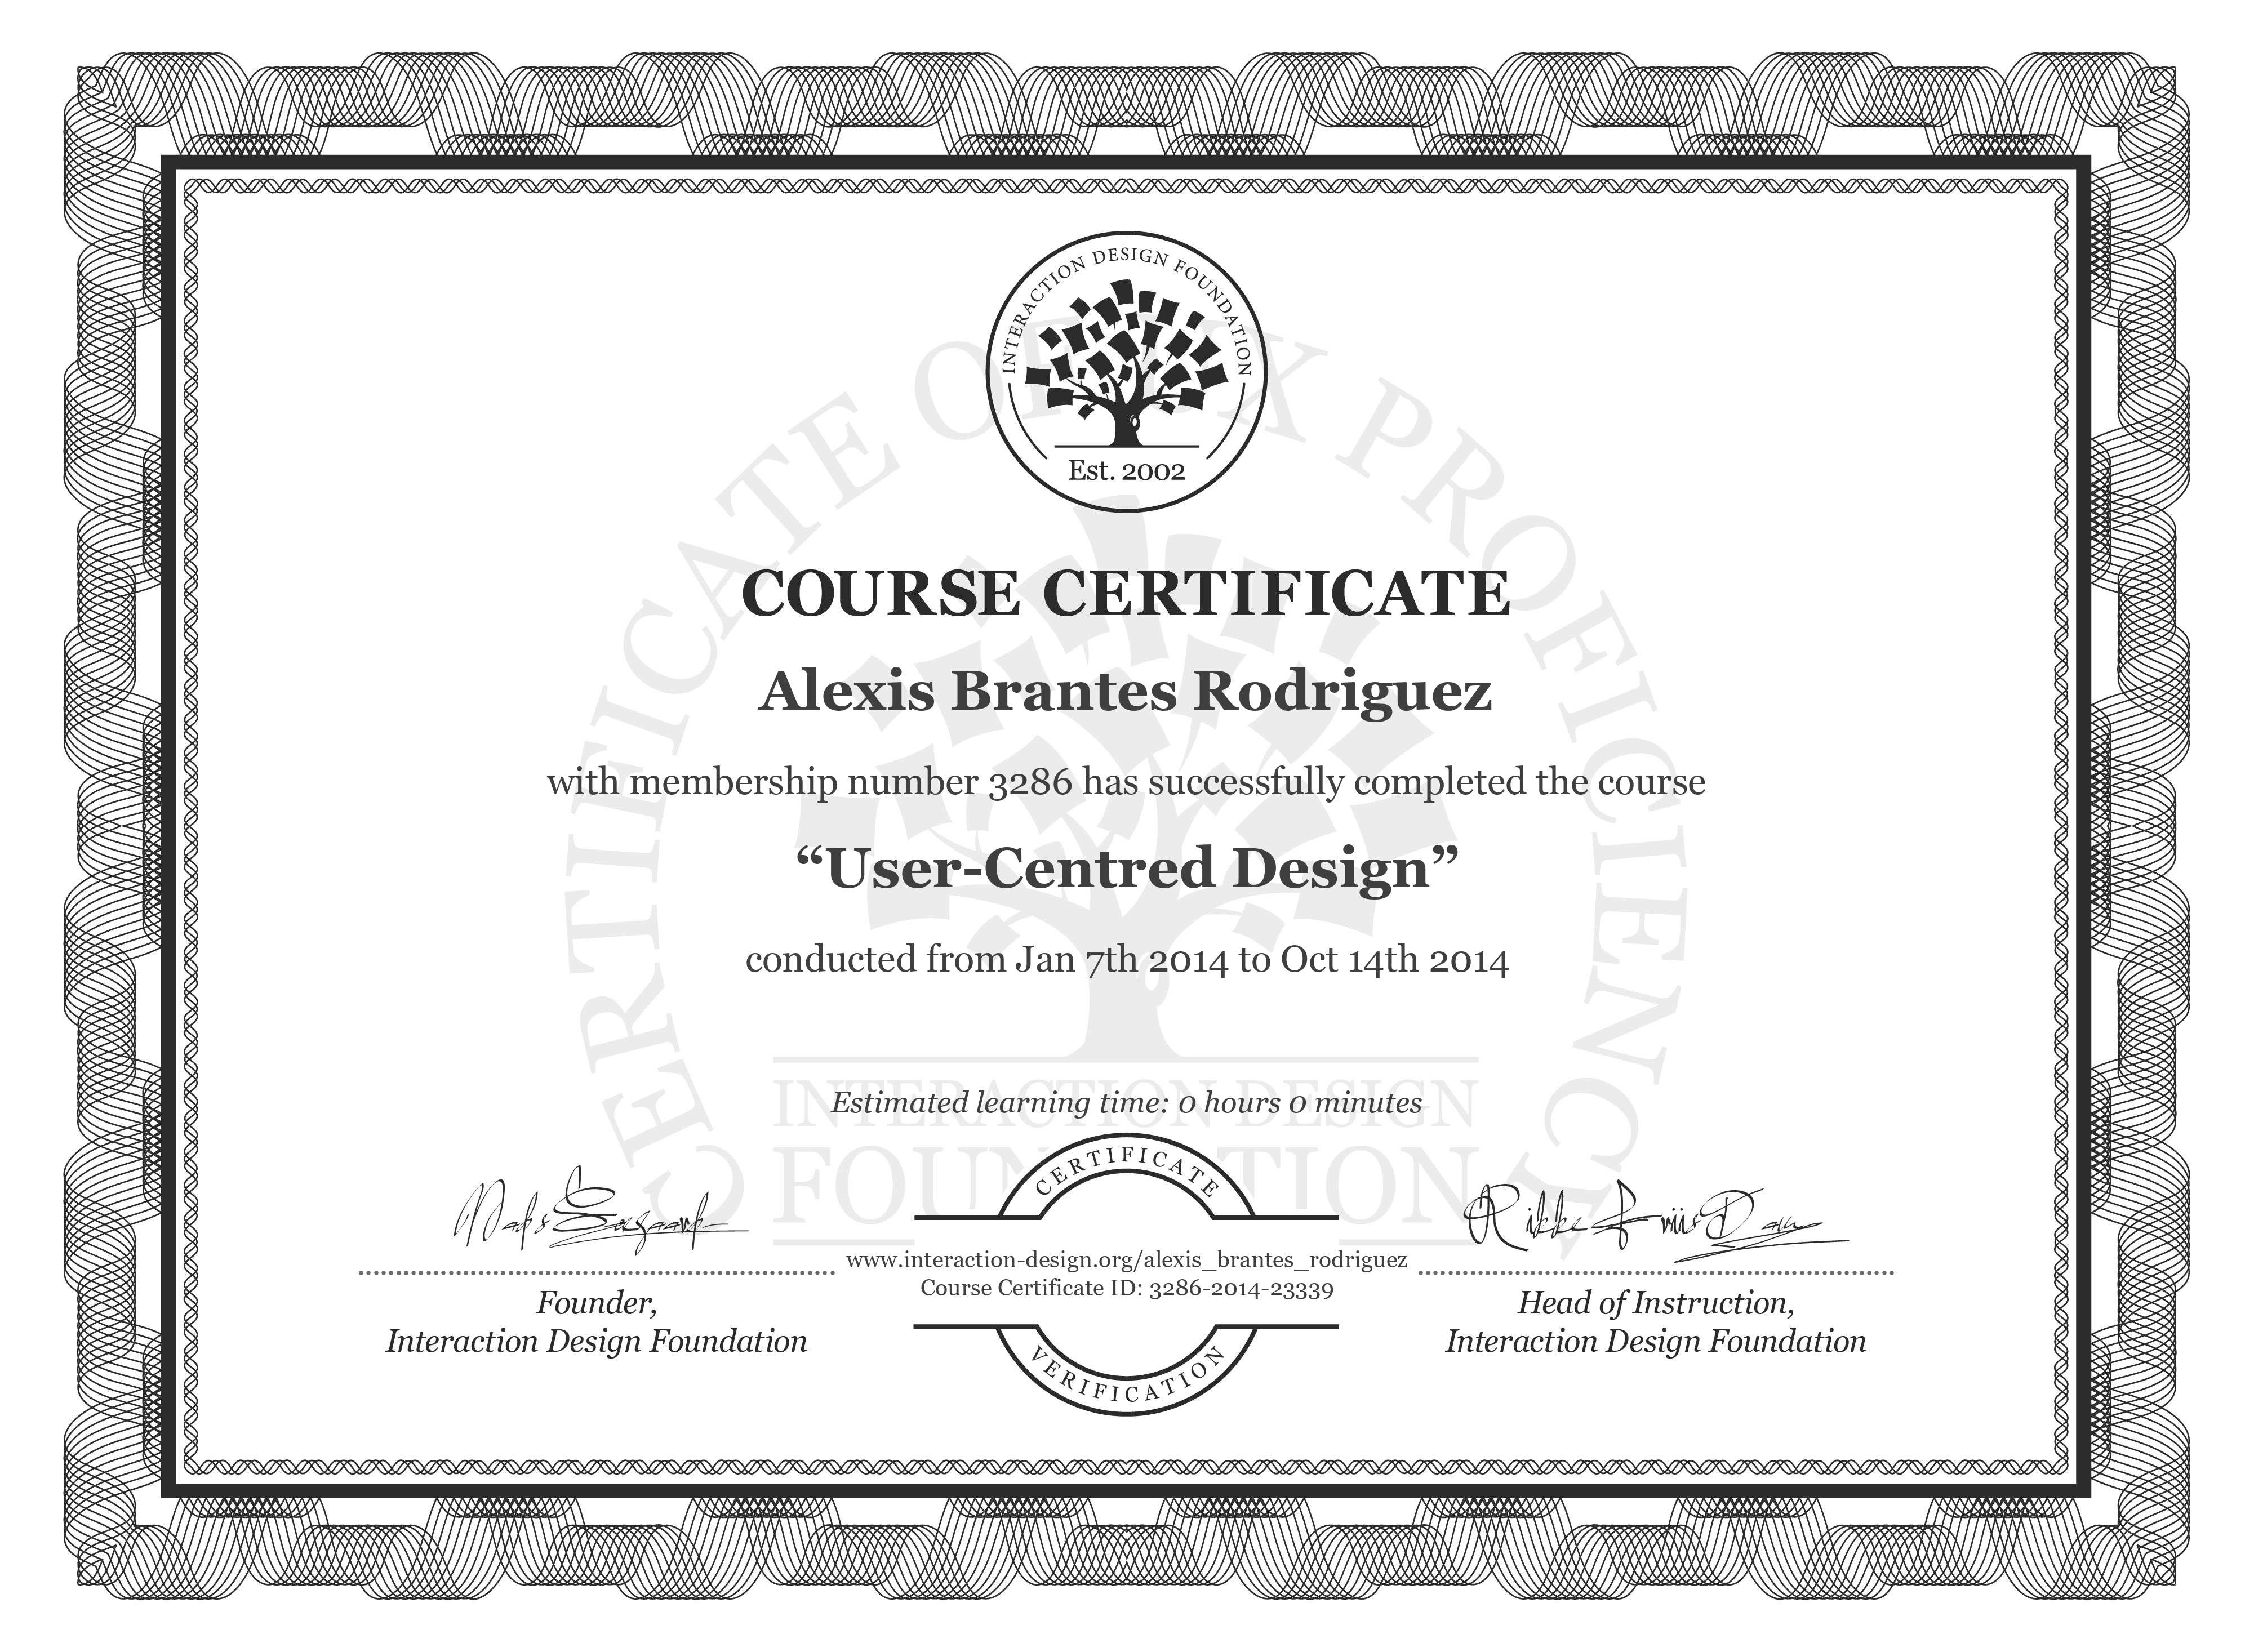 Alexis Brantes Rodriguez: Course Certificate - User-Centred Design